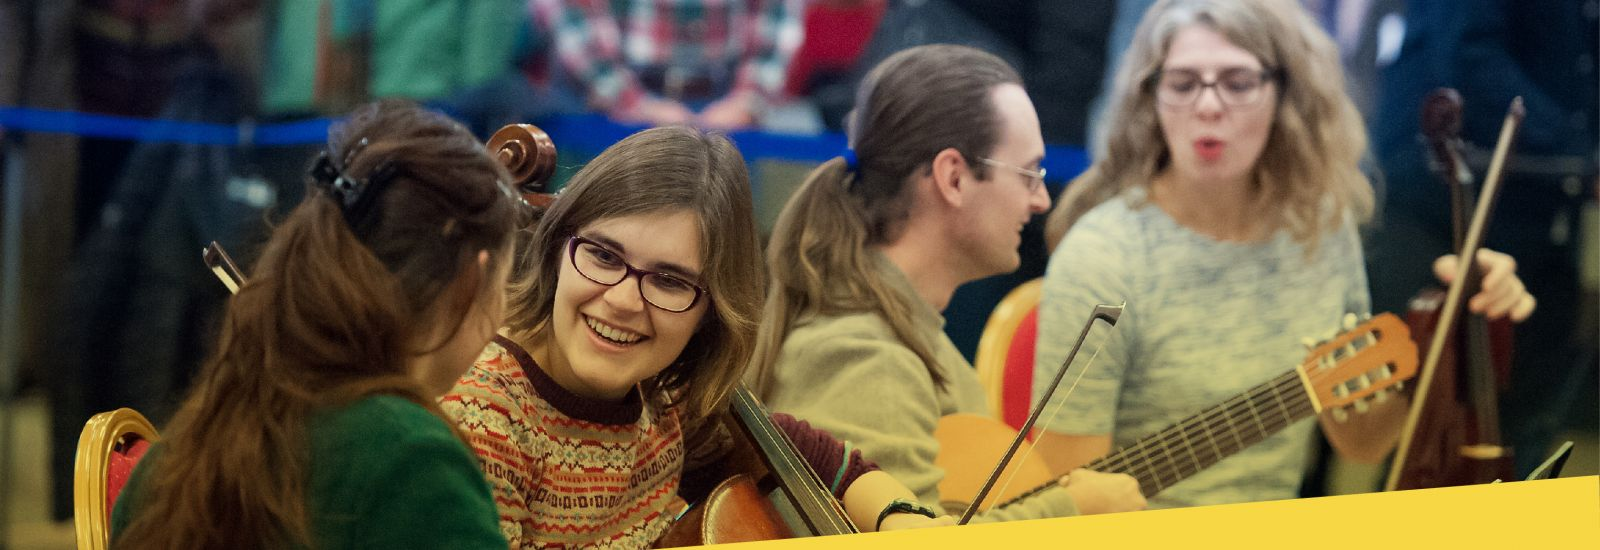 Three students sat with string instruments and one with a guitar prepare for a concert